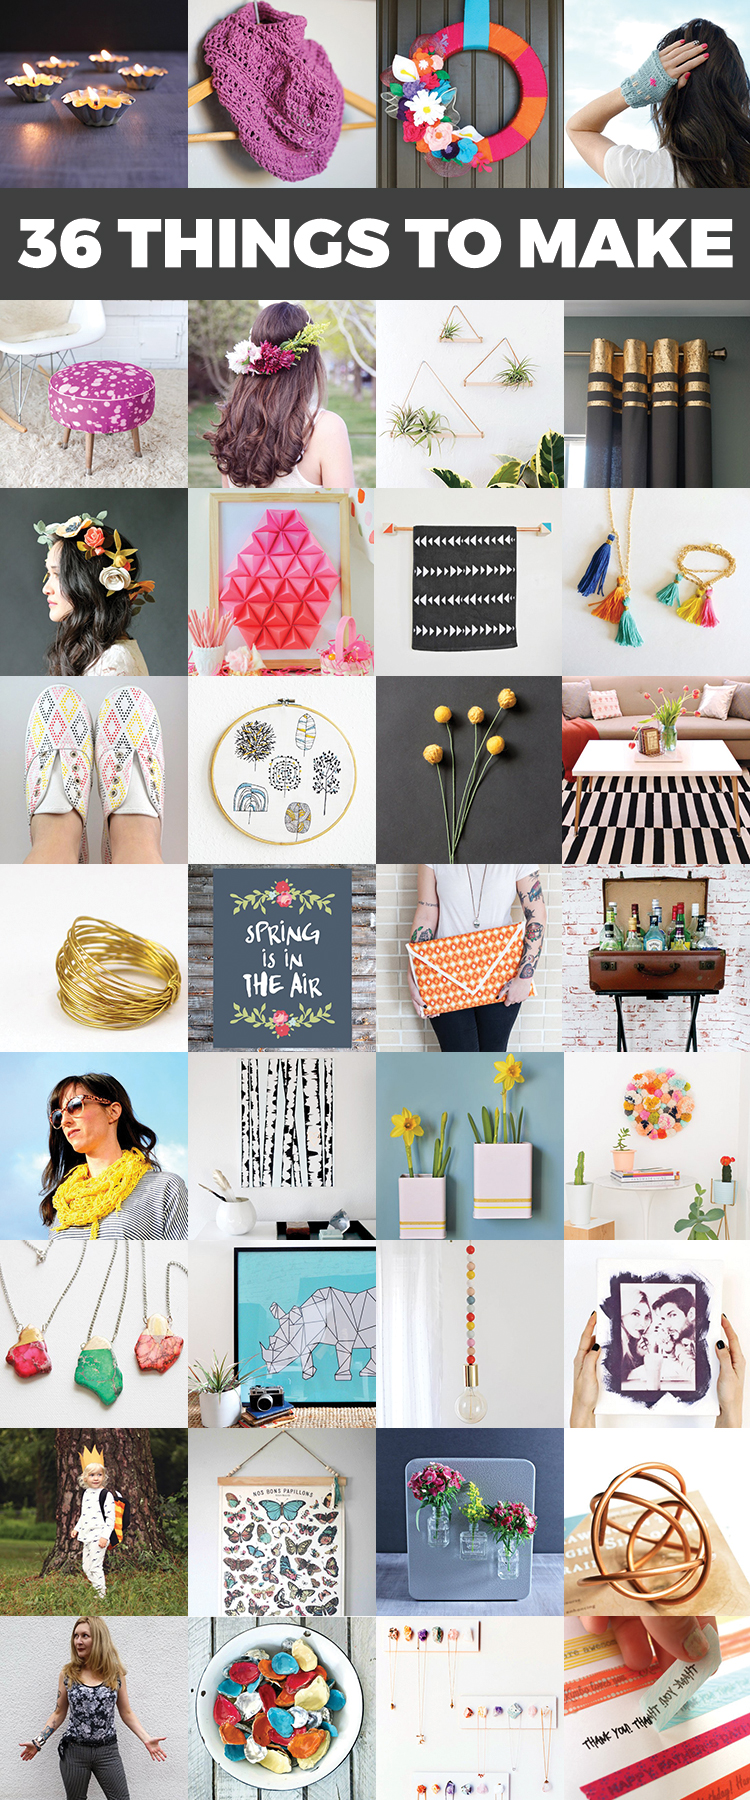 Oh my gosh! I want to make all of these things! 36 Things You'll Want to Make